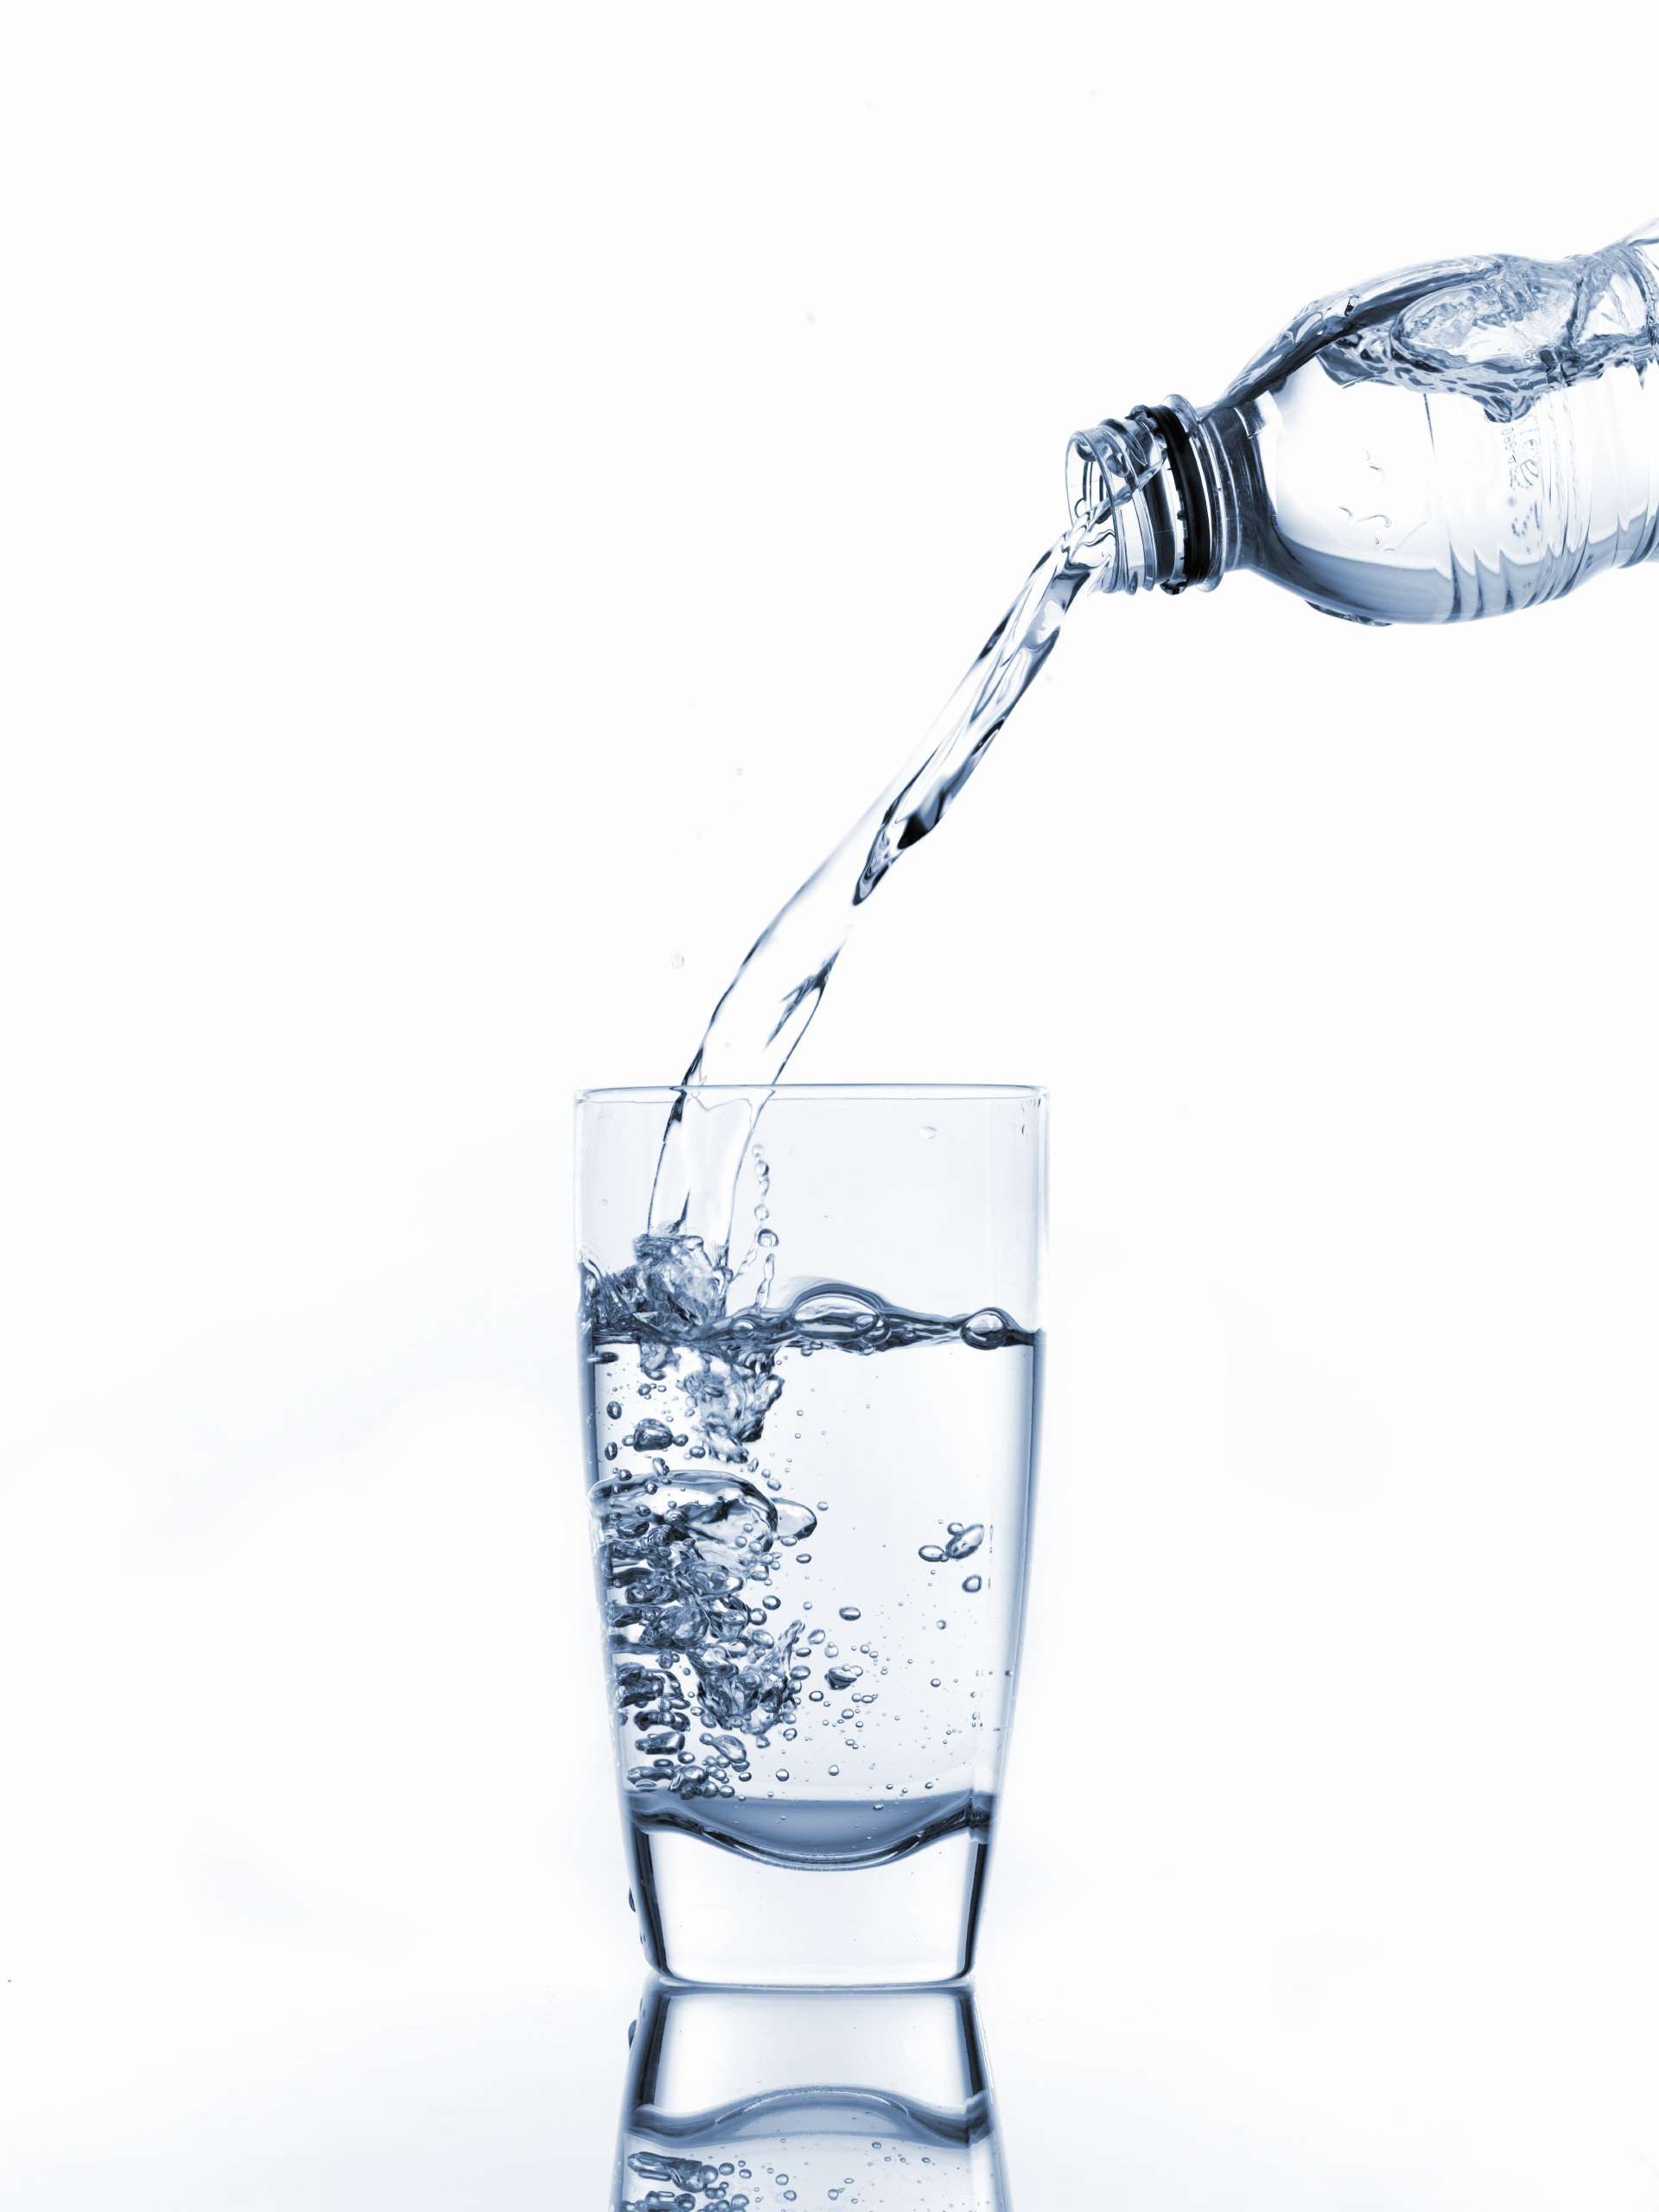 iStock_9579853Large_WaterPouring_wBubbles_Curved_Drinking_Glass.jpg